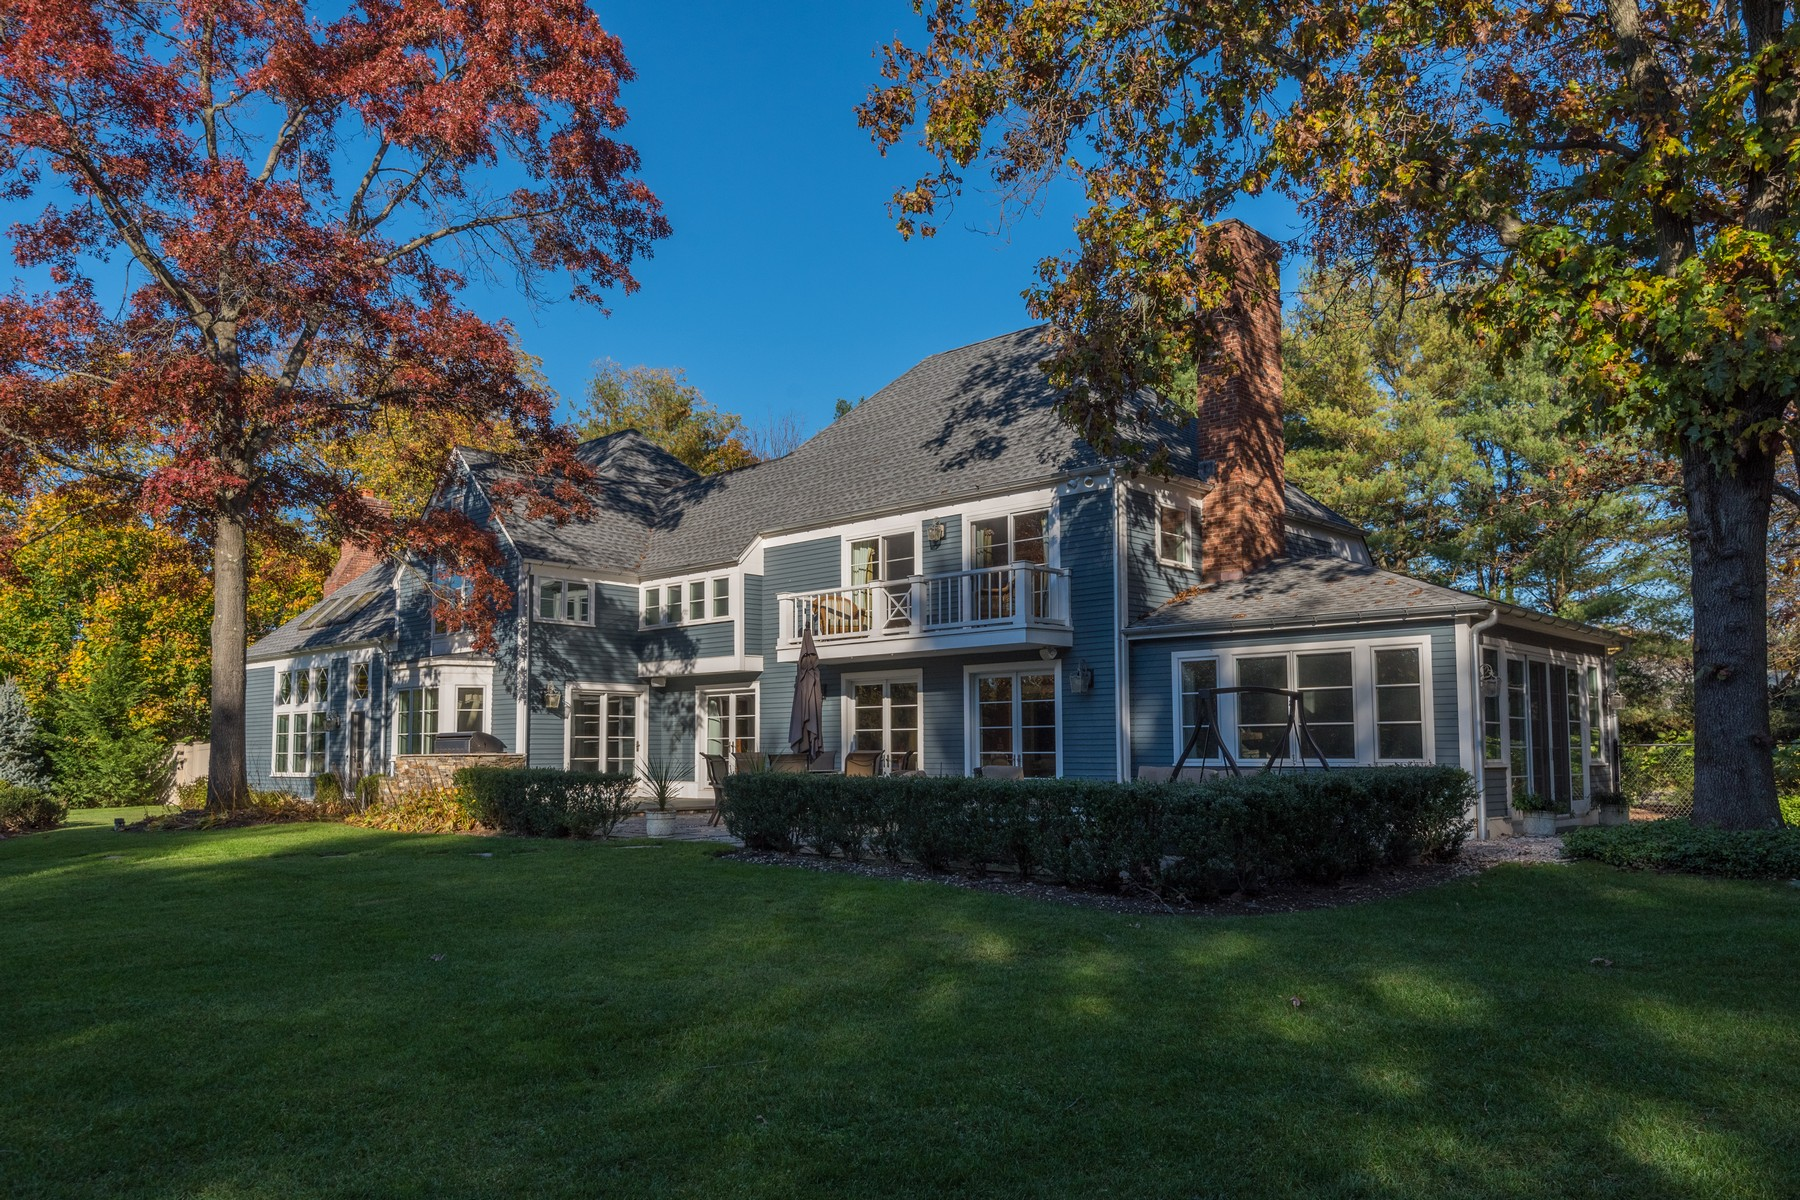 Single Family Homes for Sale at Locust Valley 12 Cherrywood Rd Locust Valley, New York 11560 United States